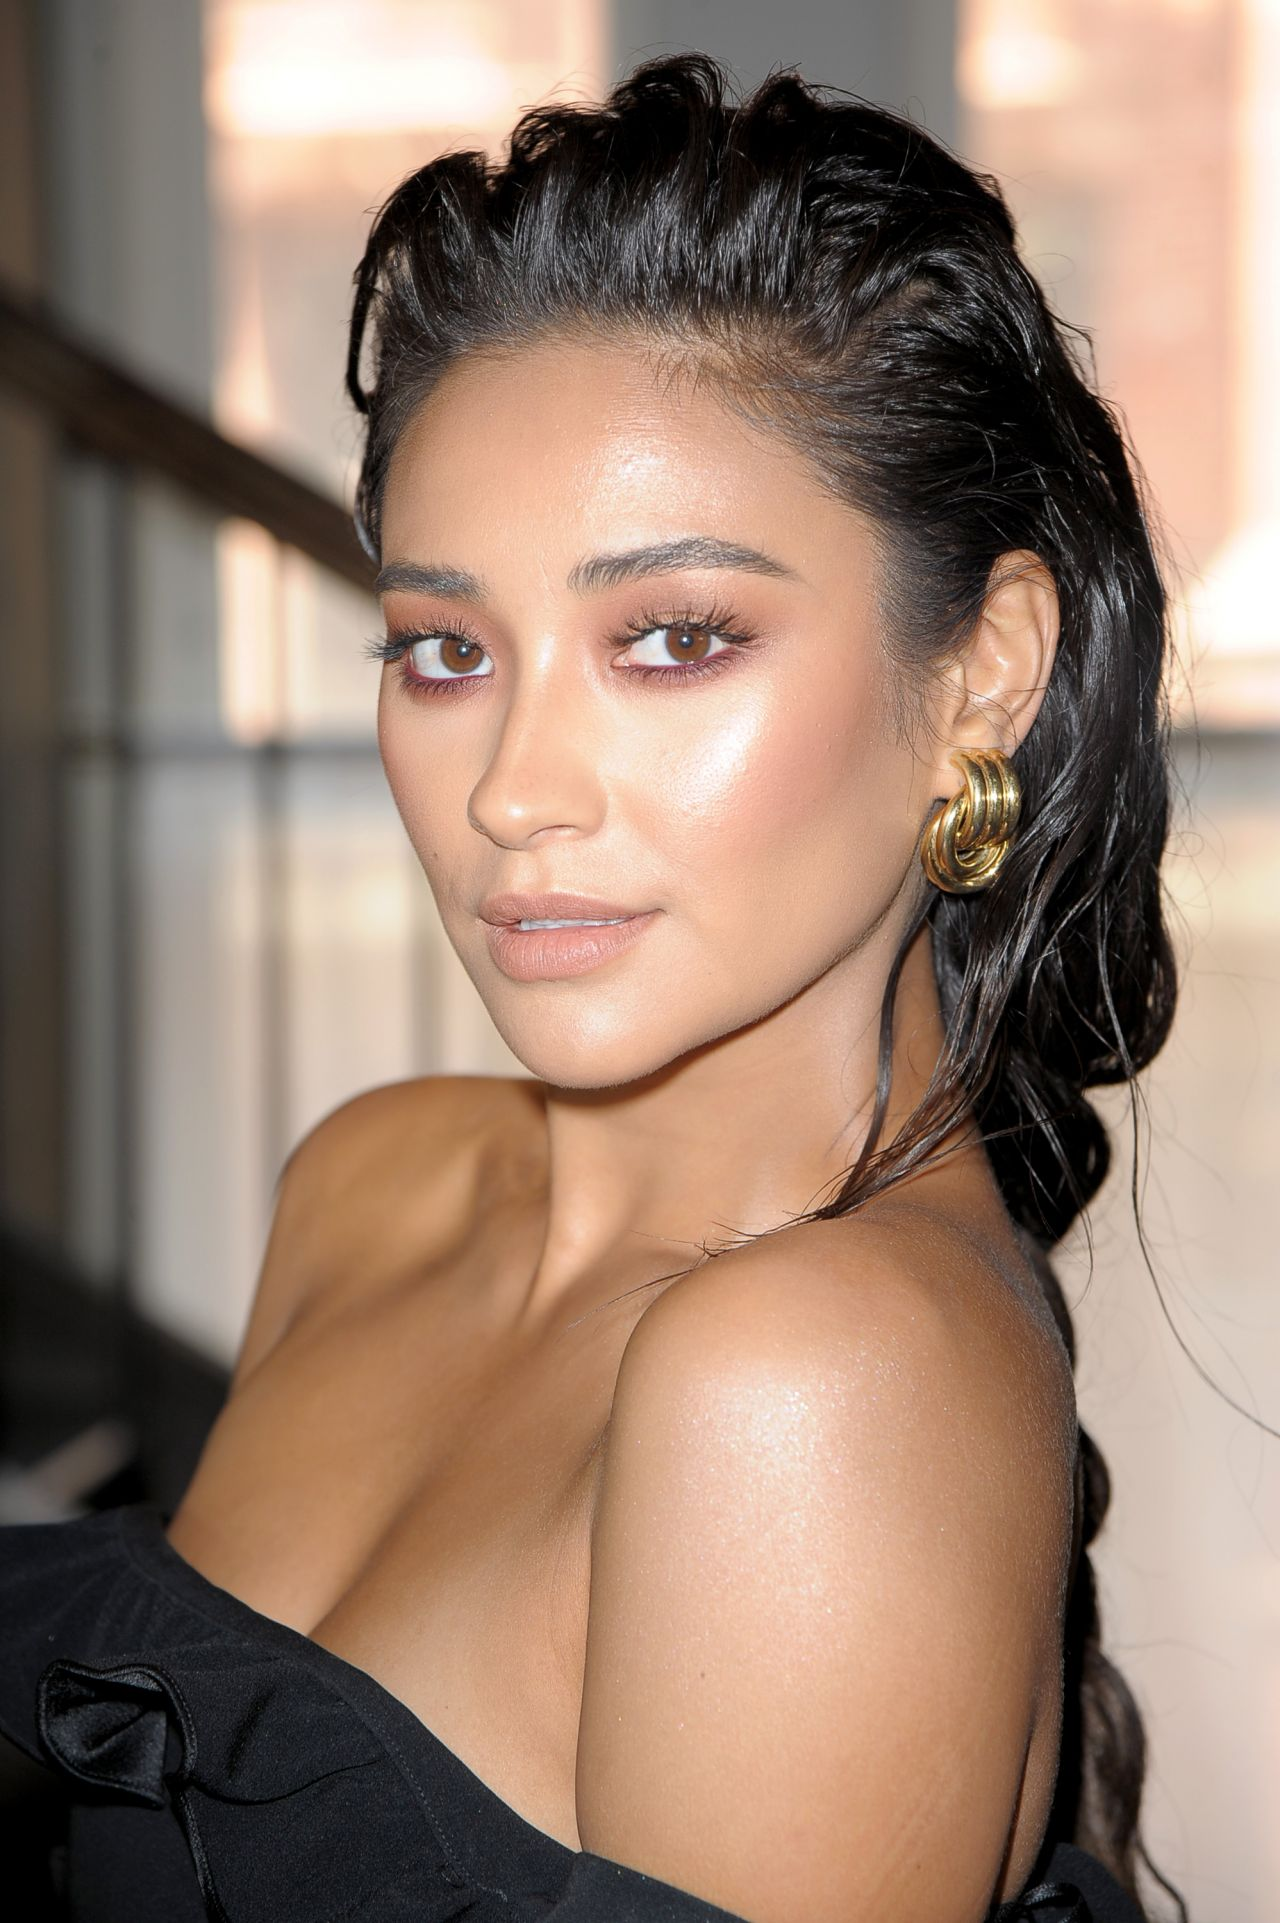 http://celebmafia.com/wp-content/uploads/2017/09/shay-mitchell-at-cinq-a-sept-presentation-nyfw-in-new-york-city-09-07-2017-1.jpg